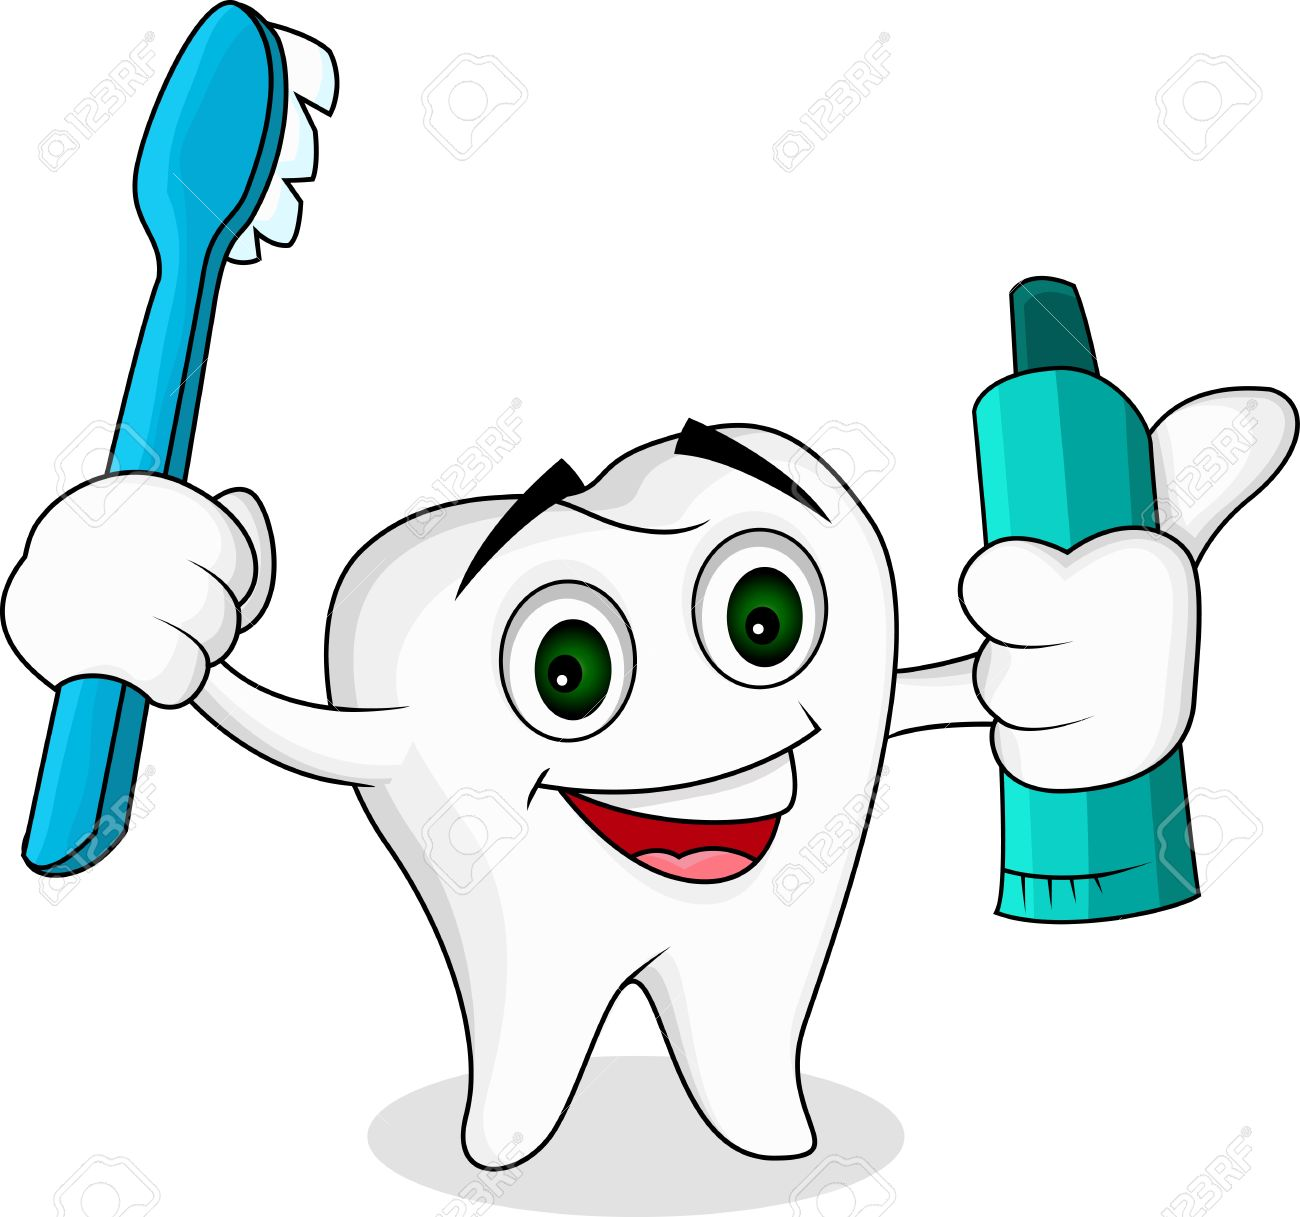 Tooth Cartoon Character Royalty Free Cliparts, Vectors, And Stock ...